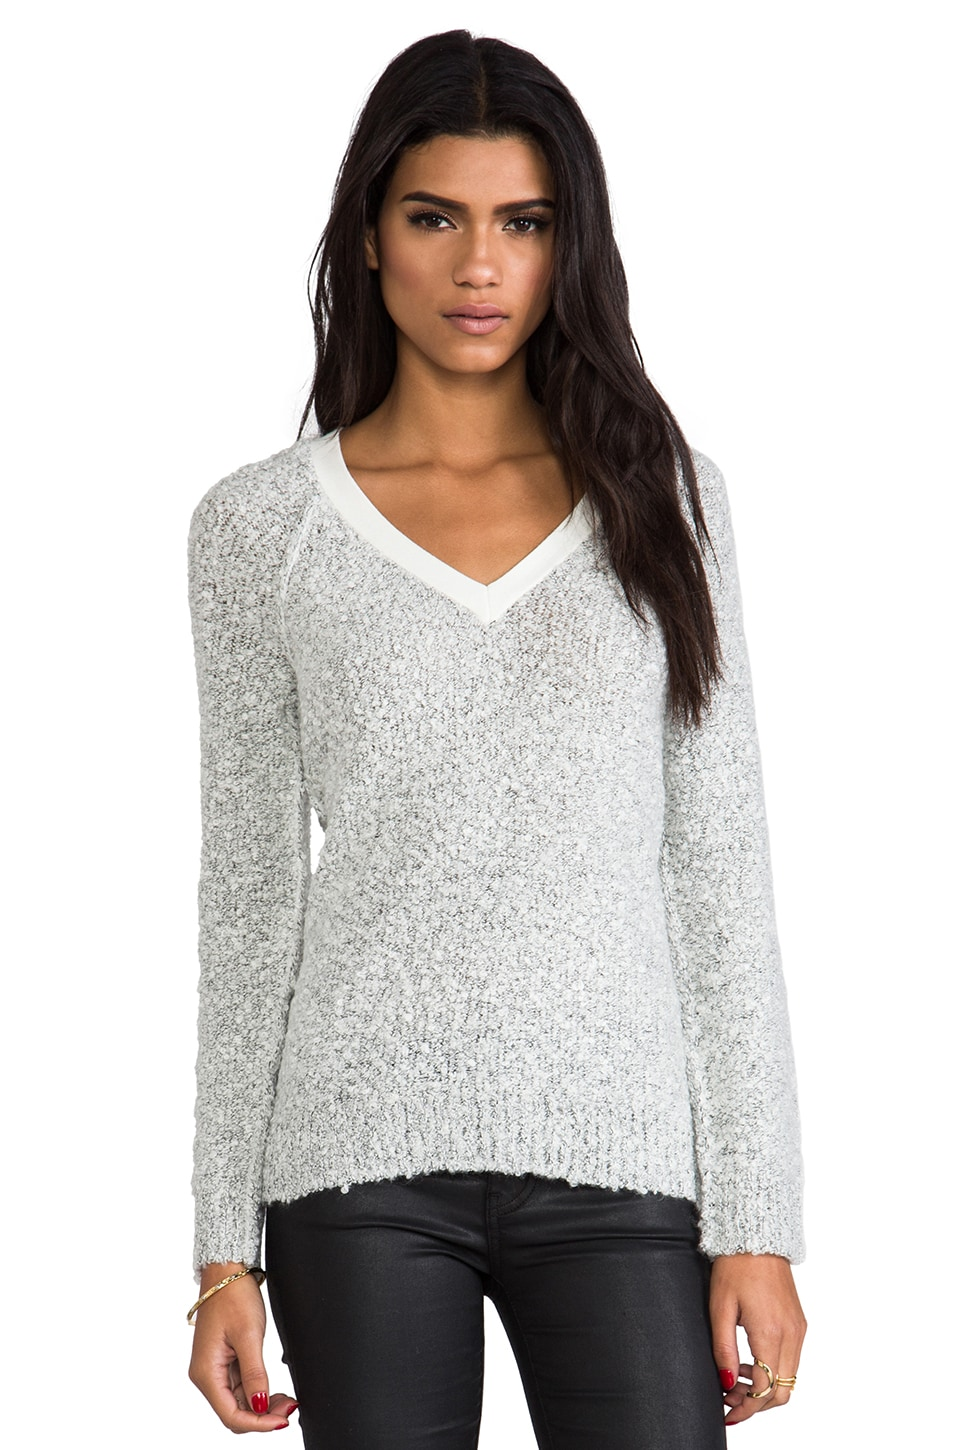 Sanctuary Winter V-Neck Sweater in Salt & Pepper